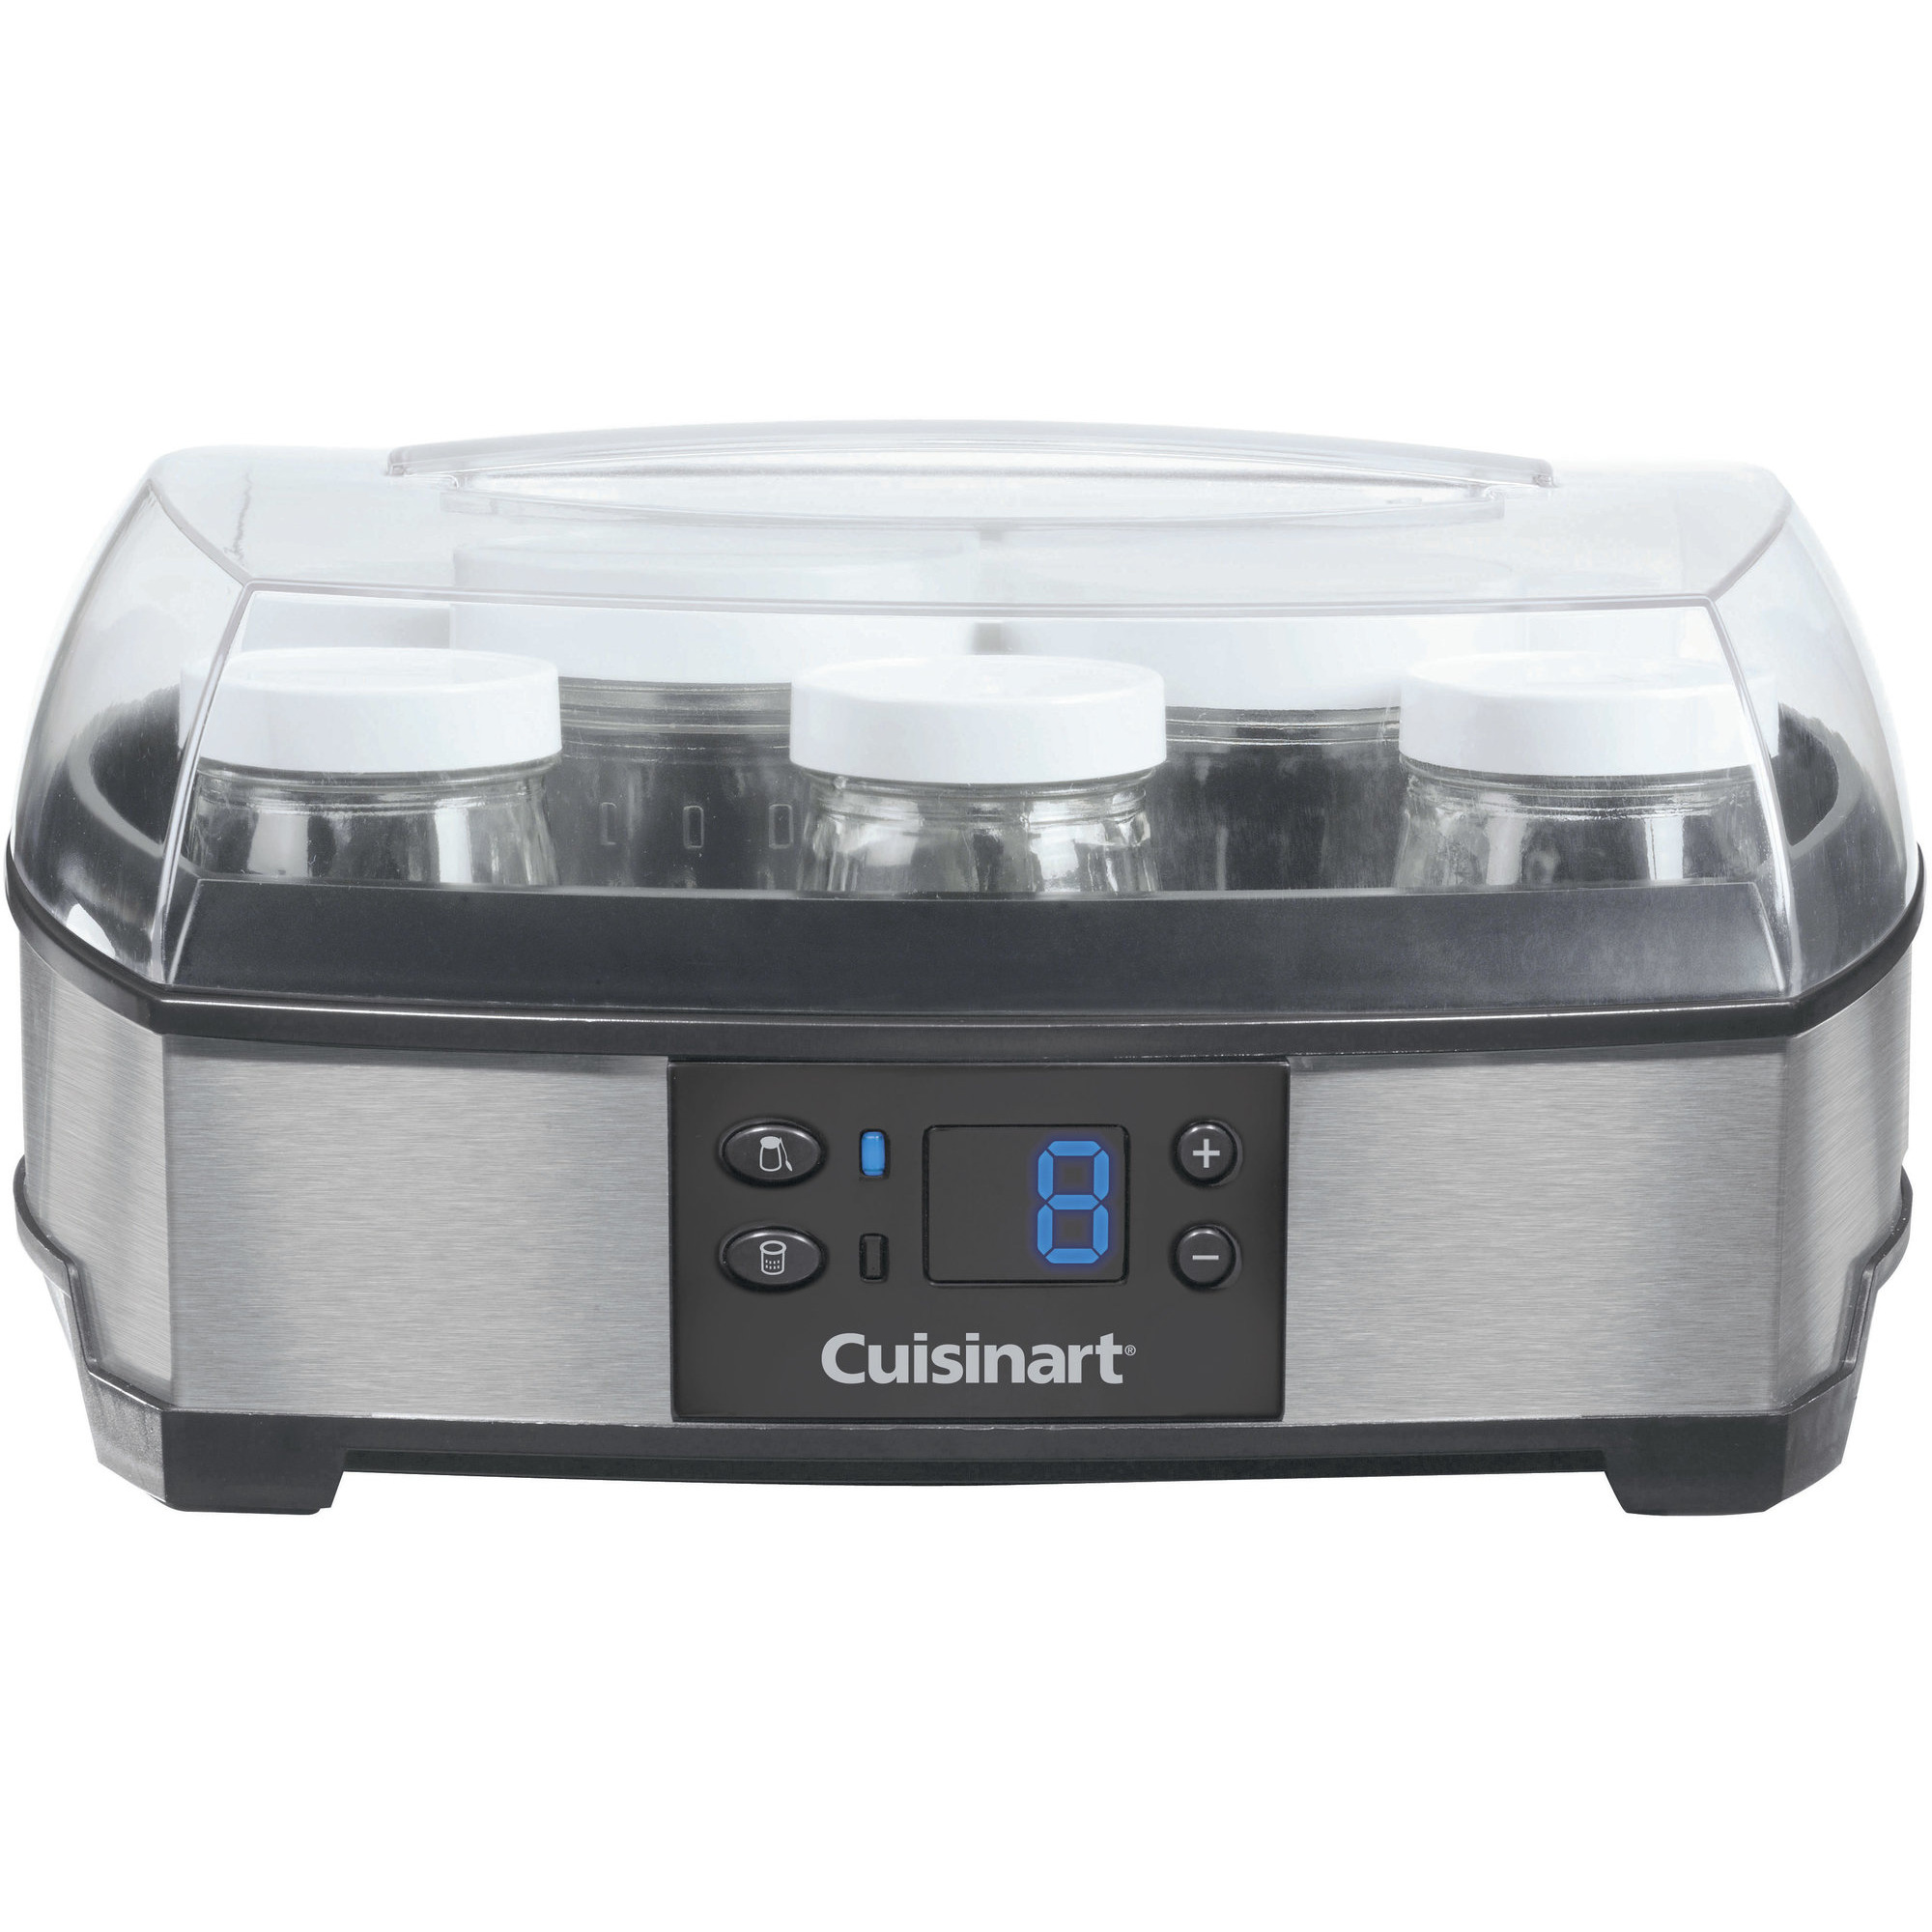 Cuisinart Professional Yoghurt & Cheese Maker